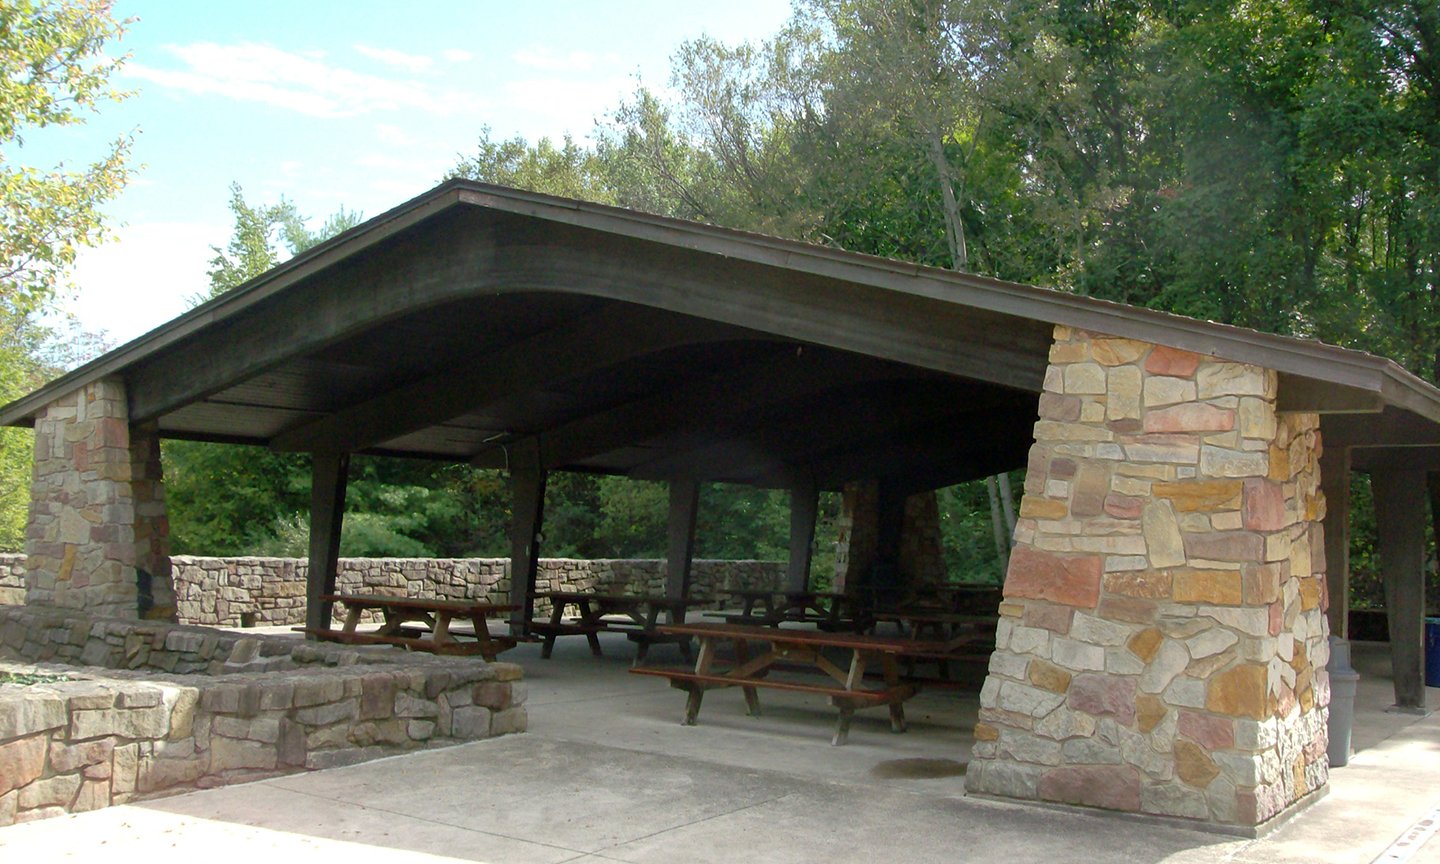 Royalview Reserved Shelter